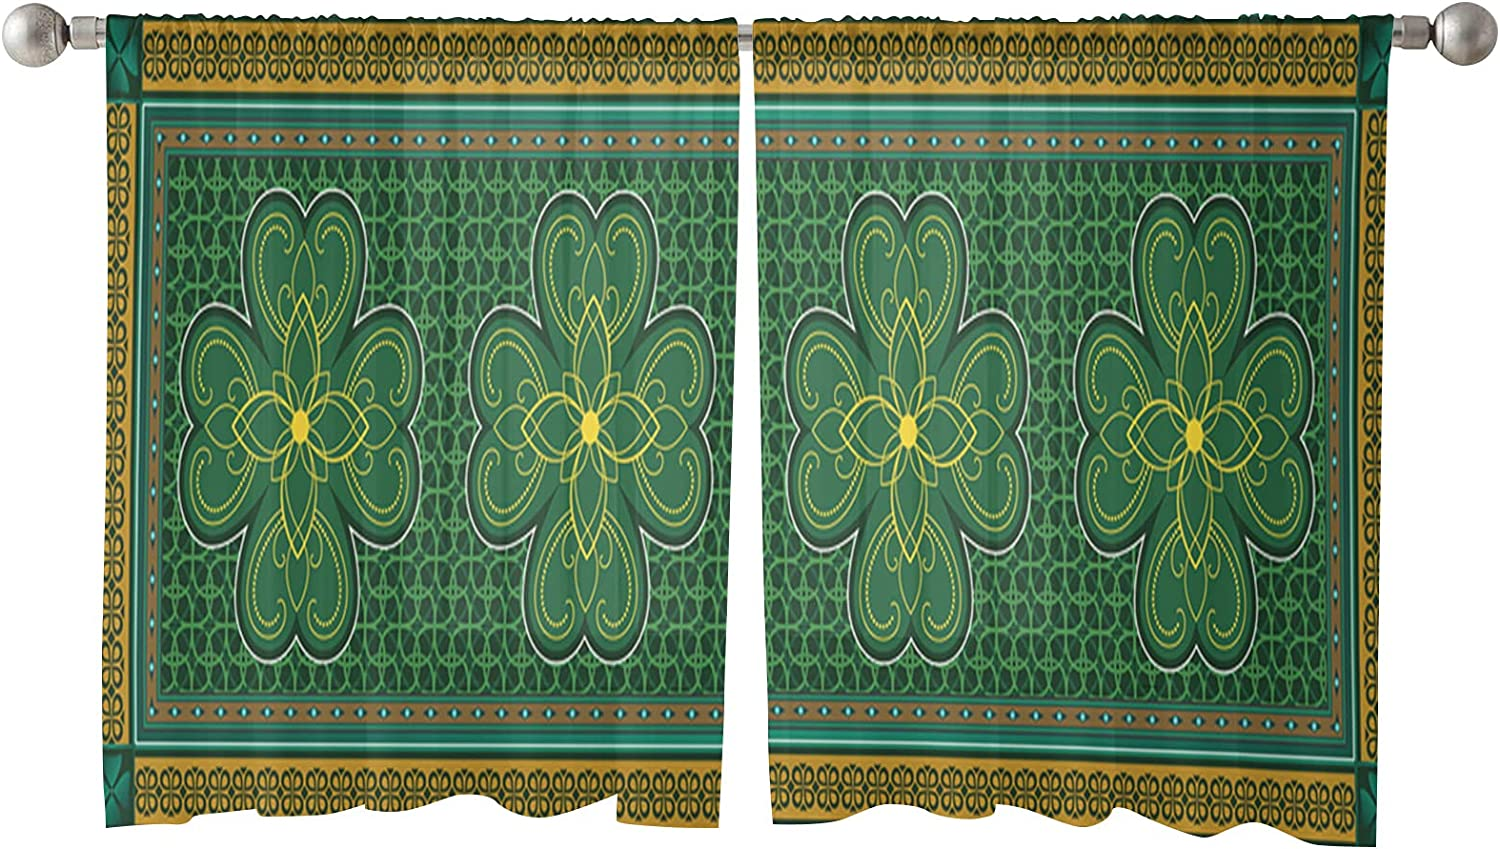 Sheer Minneapolis Mall Curtains 54 Inches Length Panels Day New product type Retro St.Patrick's 2